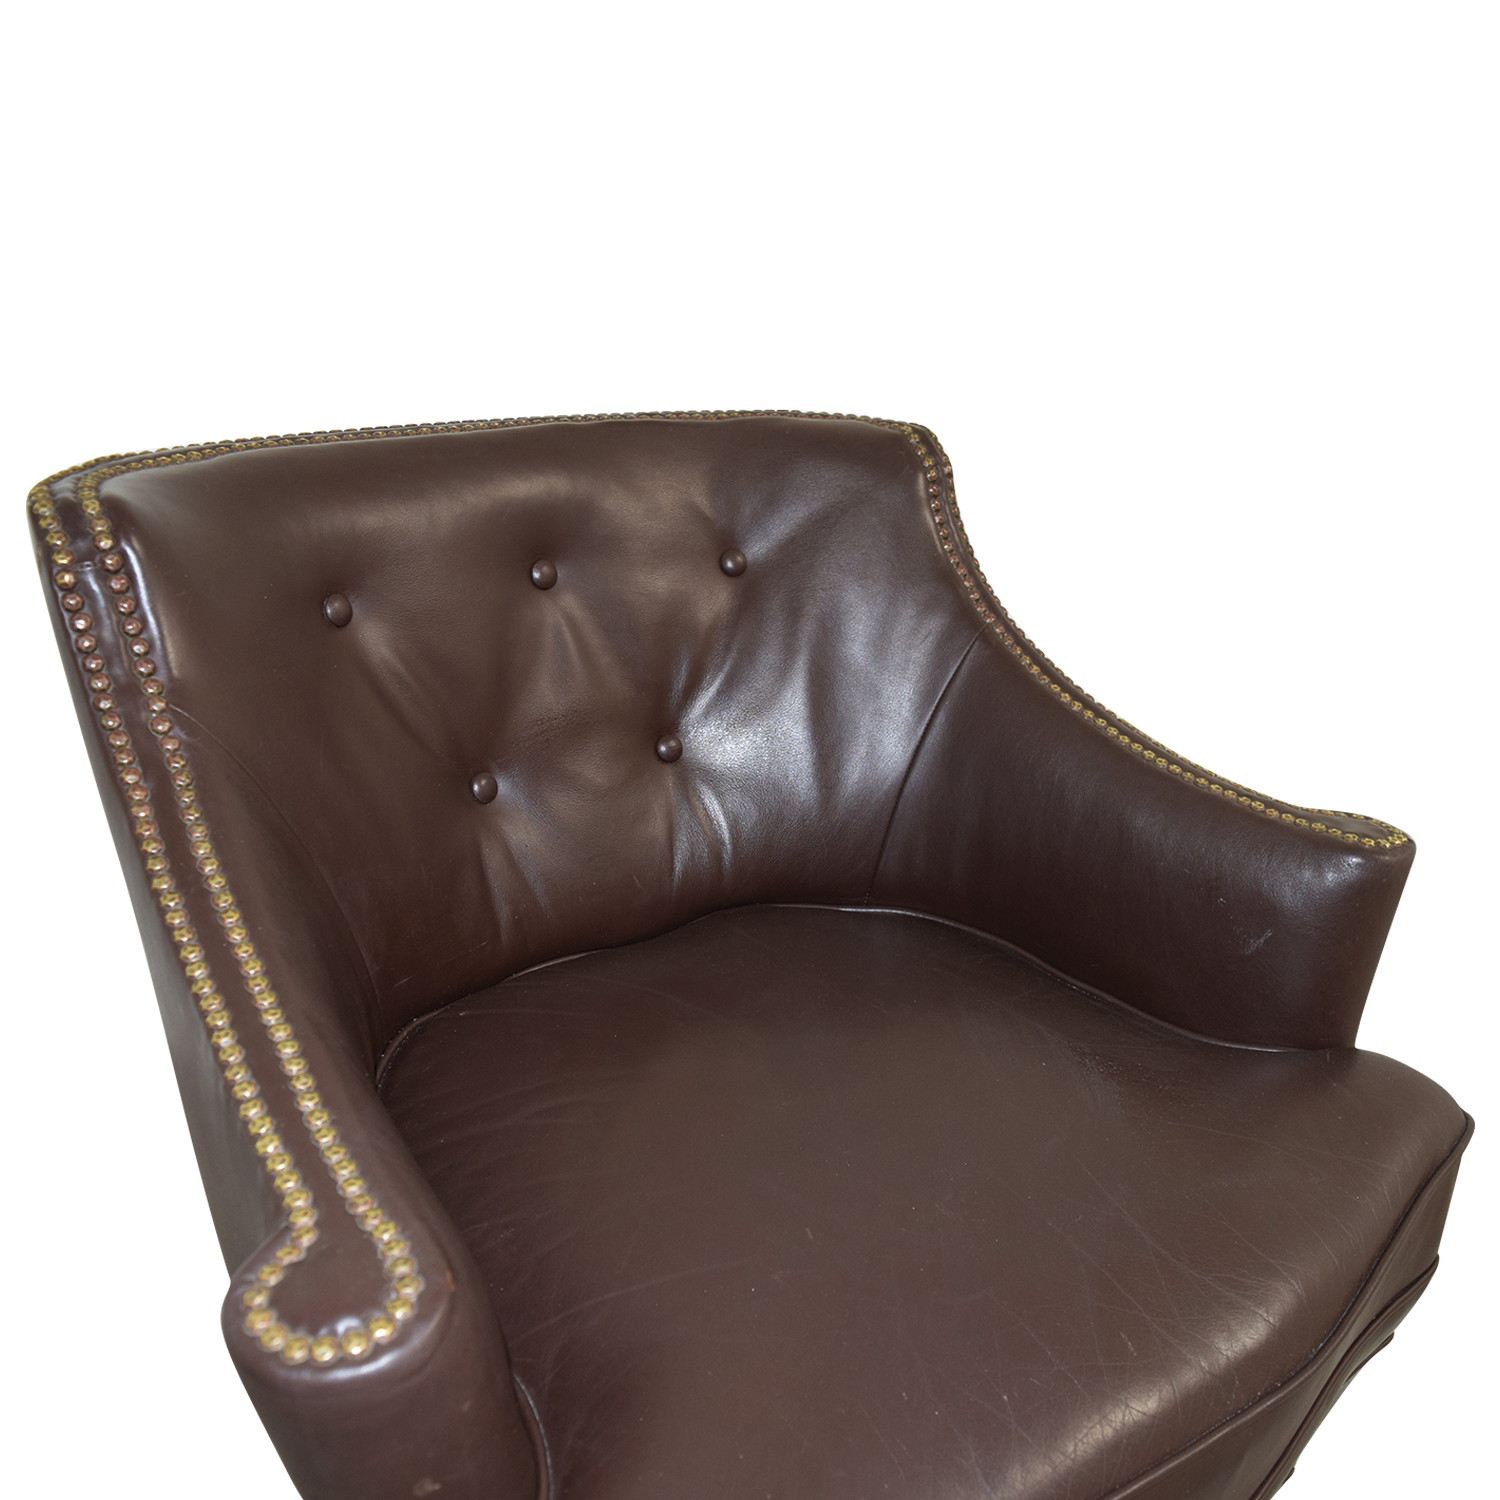 pier 1 leather chair papasan on sale 70 off imports brown